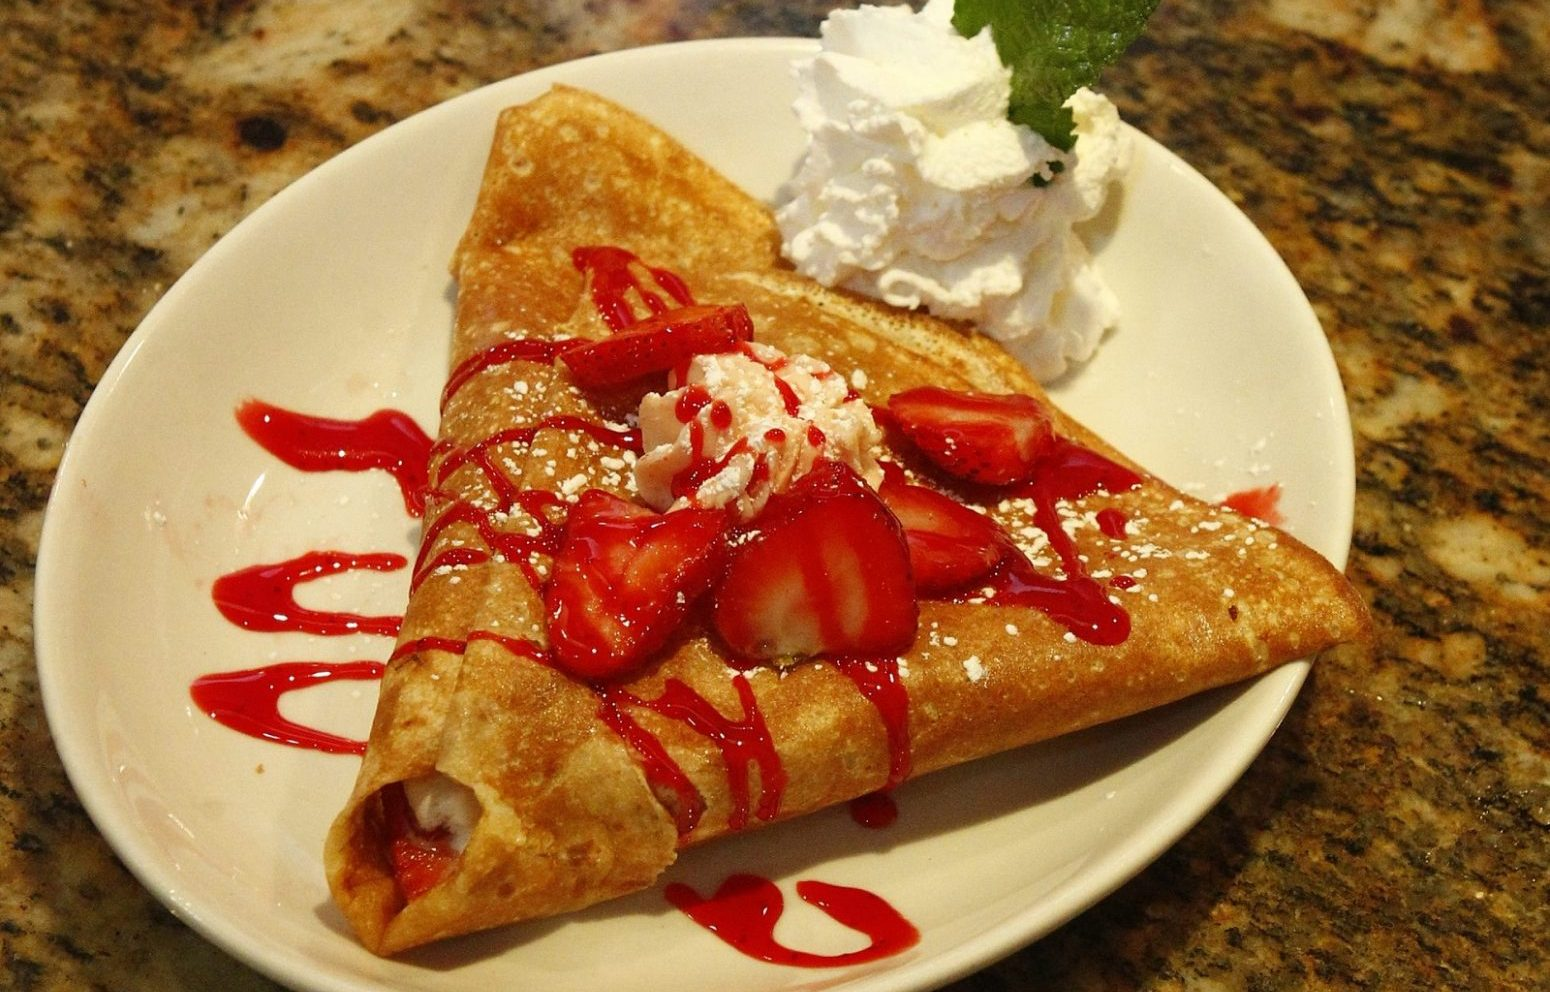 Strawberry Nutella crepe at Breakin' Eggs Creperie in Williamsville is one way to celebrate National Crepe Day. (John Hickey/Buffalo News file photo)